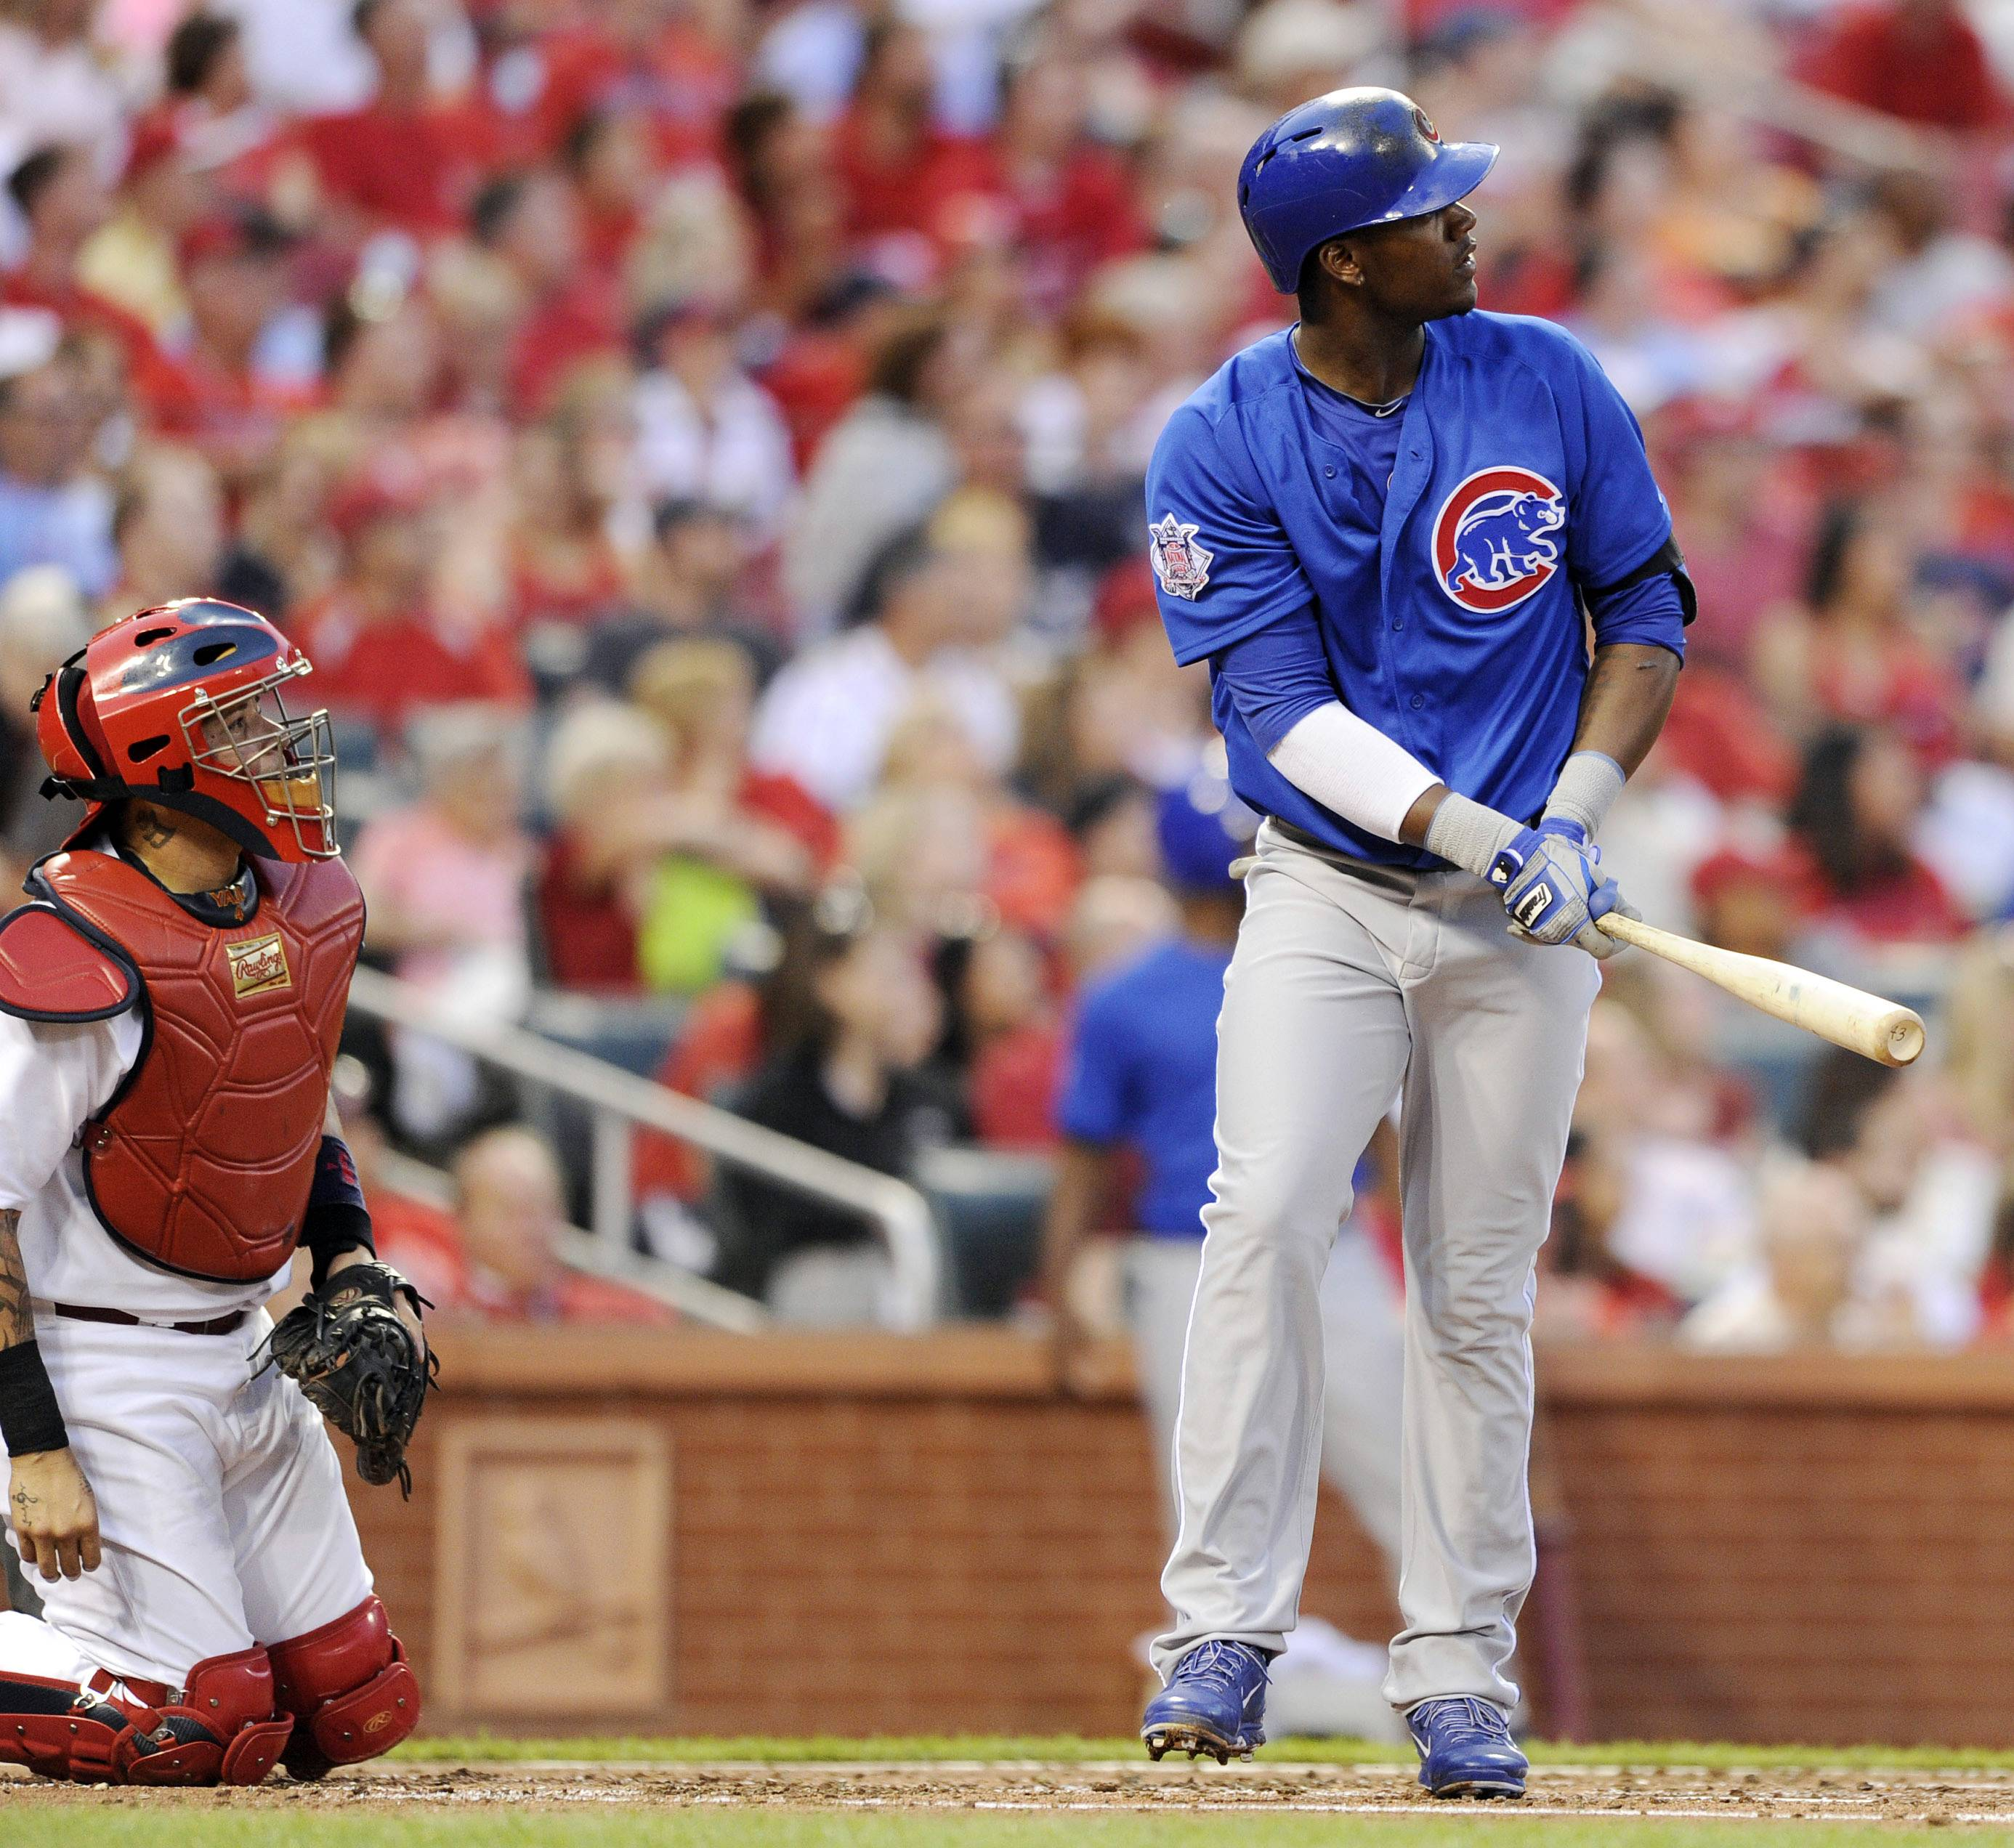 The Cubs' Junior Lake watches his three-run home run in the second inning Monday at Busch Stadium in St. Louis.